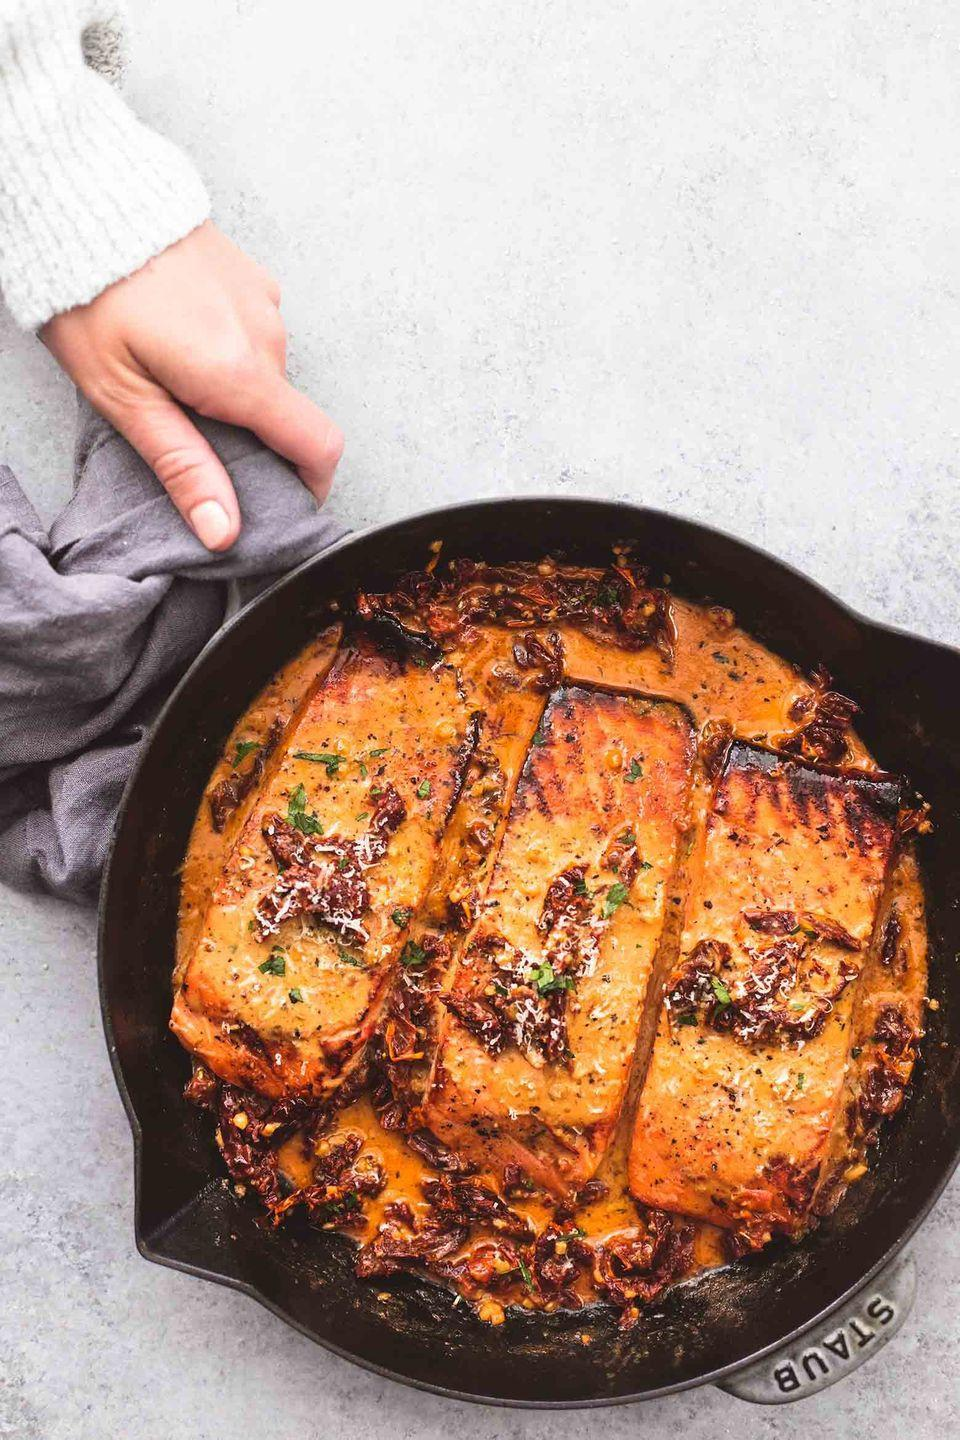 """<p>Serve up a rich, indulgent meal that won't leave you feeling overly full afterwards. </p><p><strong>Get the recipe at <a href=""""https://www.lecremedelacrumb.com/salmon-in-creamy-sun-dried-tomato-sauce/"""" rel=""""nofollow noopener"""" target=""""_blank"""" data-ylk=""""slk:Creme de la Crumb"""" class=""""link rapid-noclick-resp"""">Creme de la Crumb</a>.</strong> </p><p><a class=""""link rapid-noclick-resp"""" href=""""https://www.amazon.com/Victoria-Skillet-Seasoned-Flaxseed-Certified/dp/B01726HD72/?tag=syn-yahoo-20&ascsubtag=%5Bartid%7C10050.g.1115%5Bsrc%7Cyahoo-us"""" rel=""""nofollow noopener"""" target=""""_blank"""" data-ylk=""""slk:SHOP SKILLETS"""">SHOP SKILLETS</a></p>"""